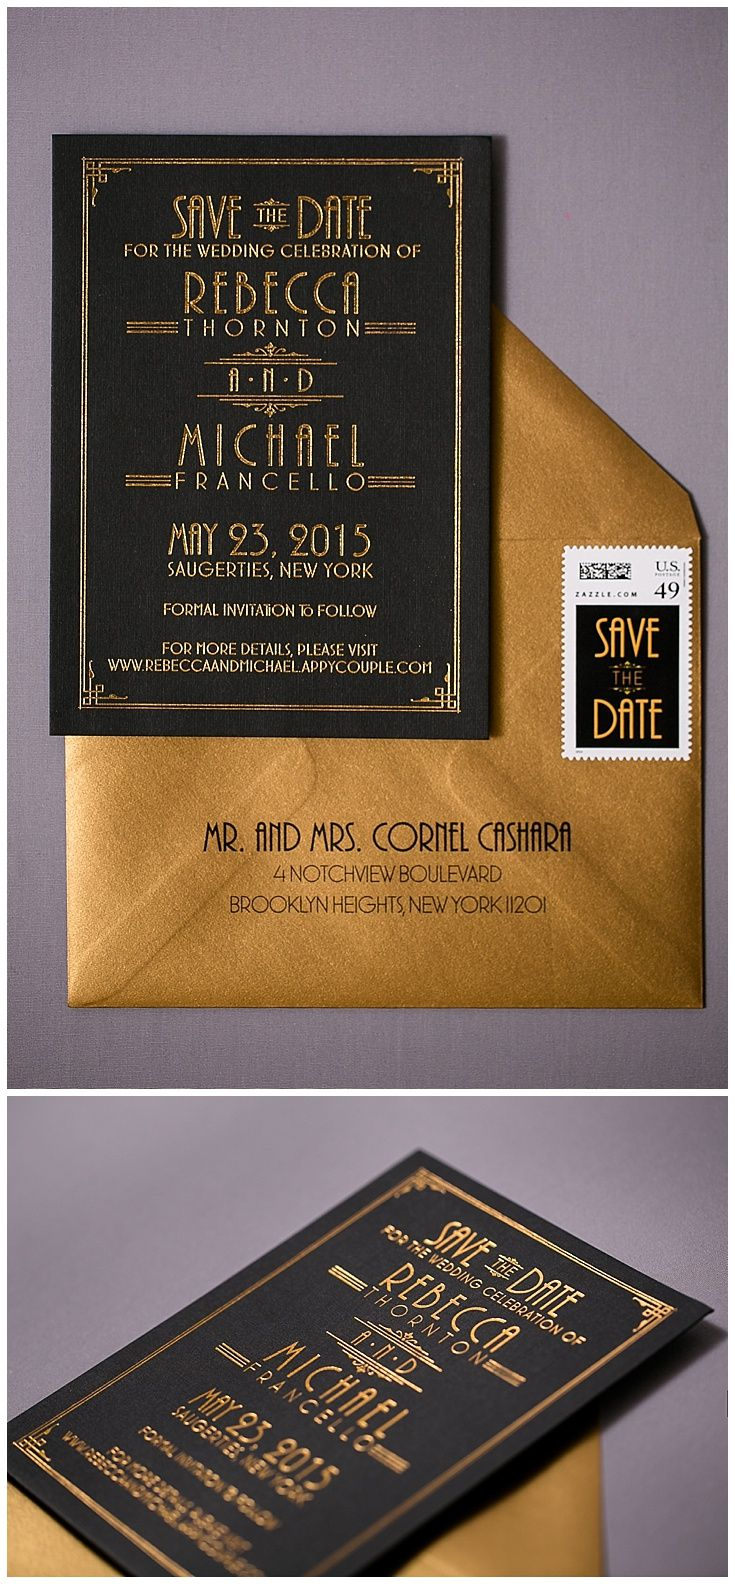 Art deco save the dates are a gorgeous way to get your guests excited for any art deco event. Printed with gold foil, these black save the dates where mailed in gold envelopes. Click to see all of the details or PIN to save for later!